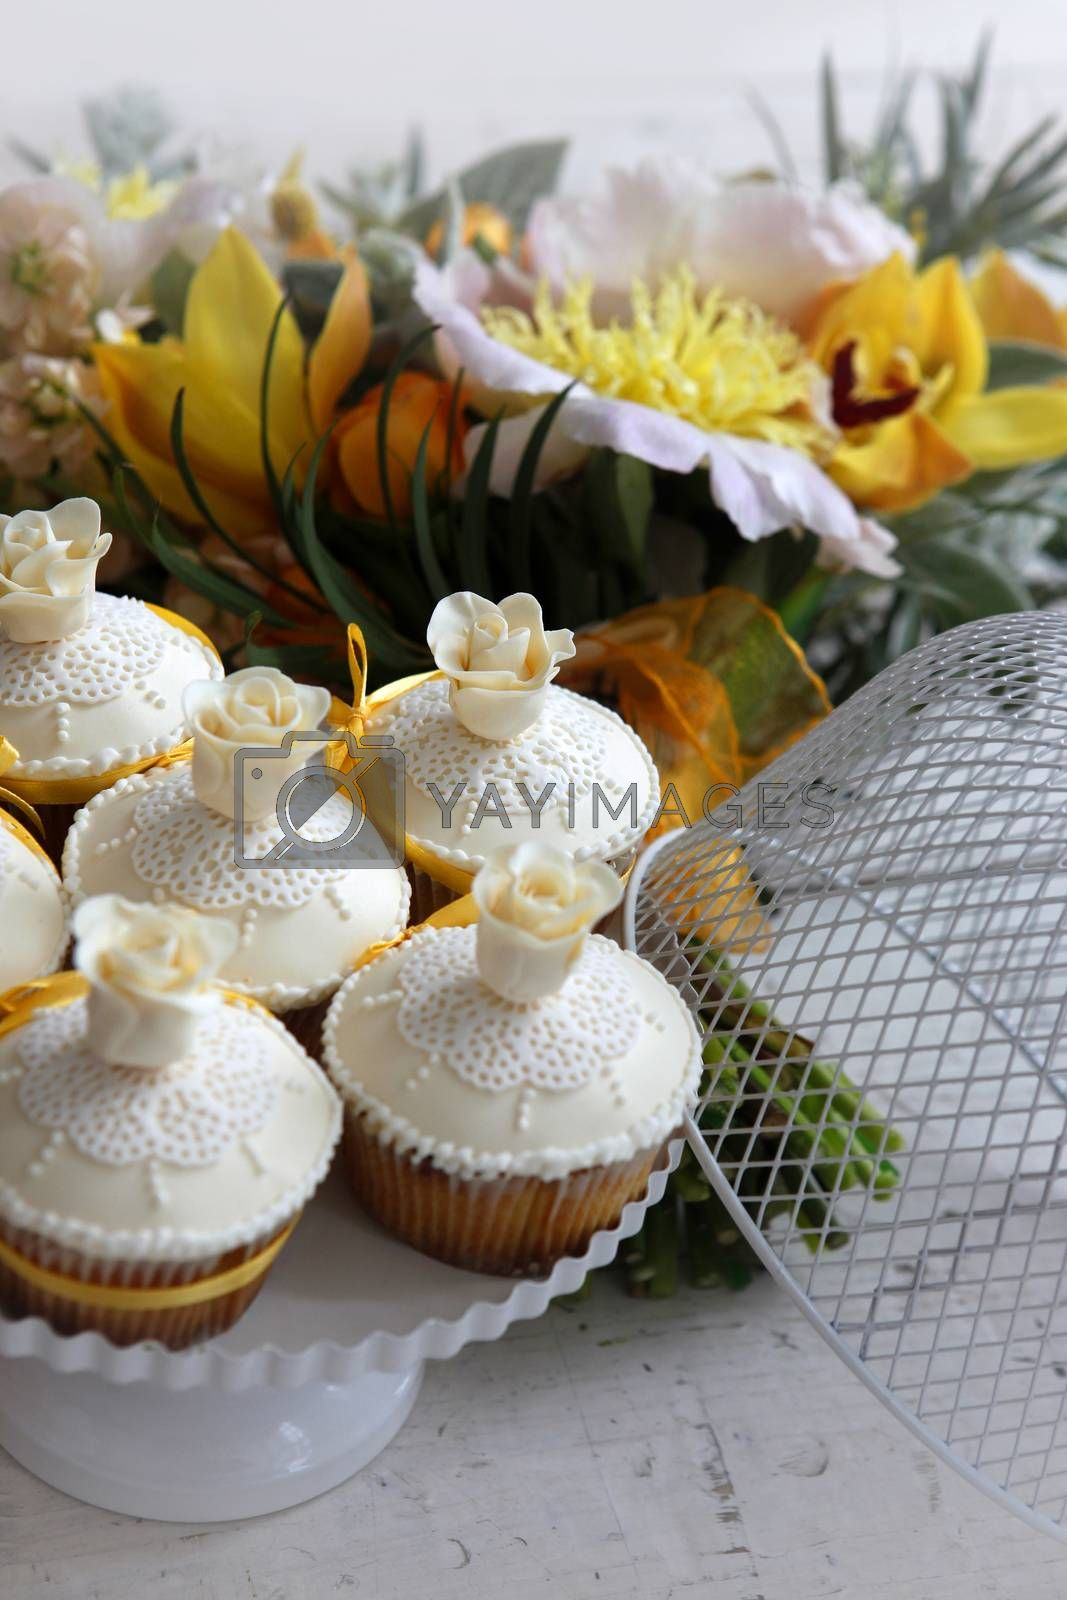 Royalty free image of Beautiful cakes and bridal bouquet in orange tones by friday